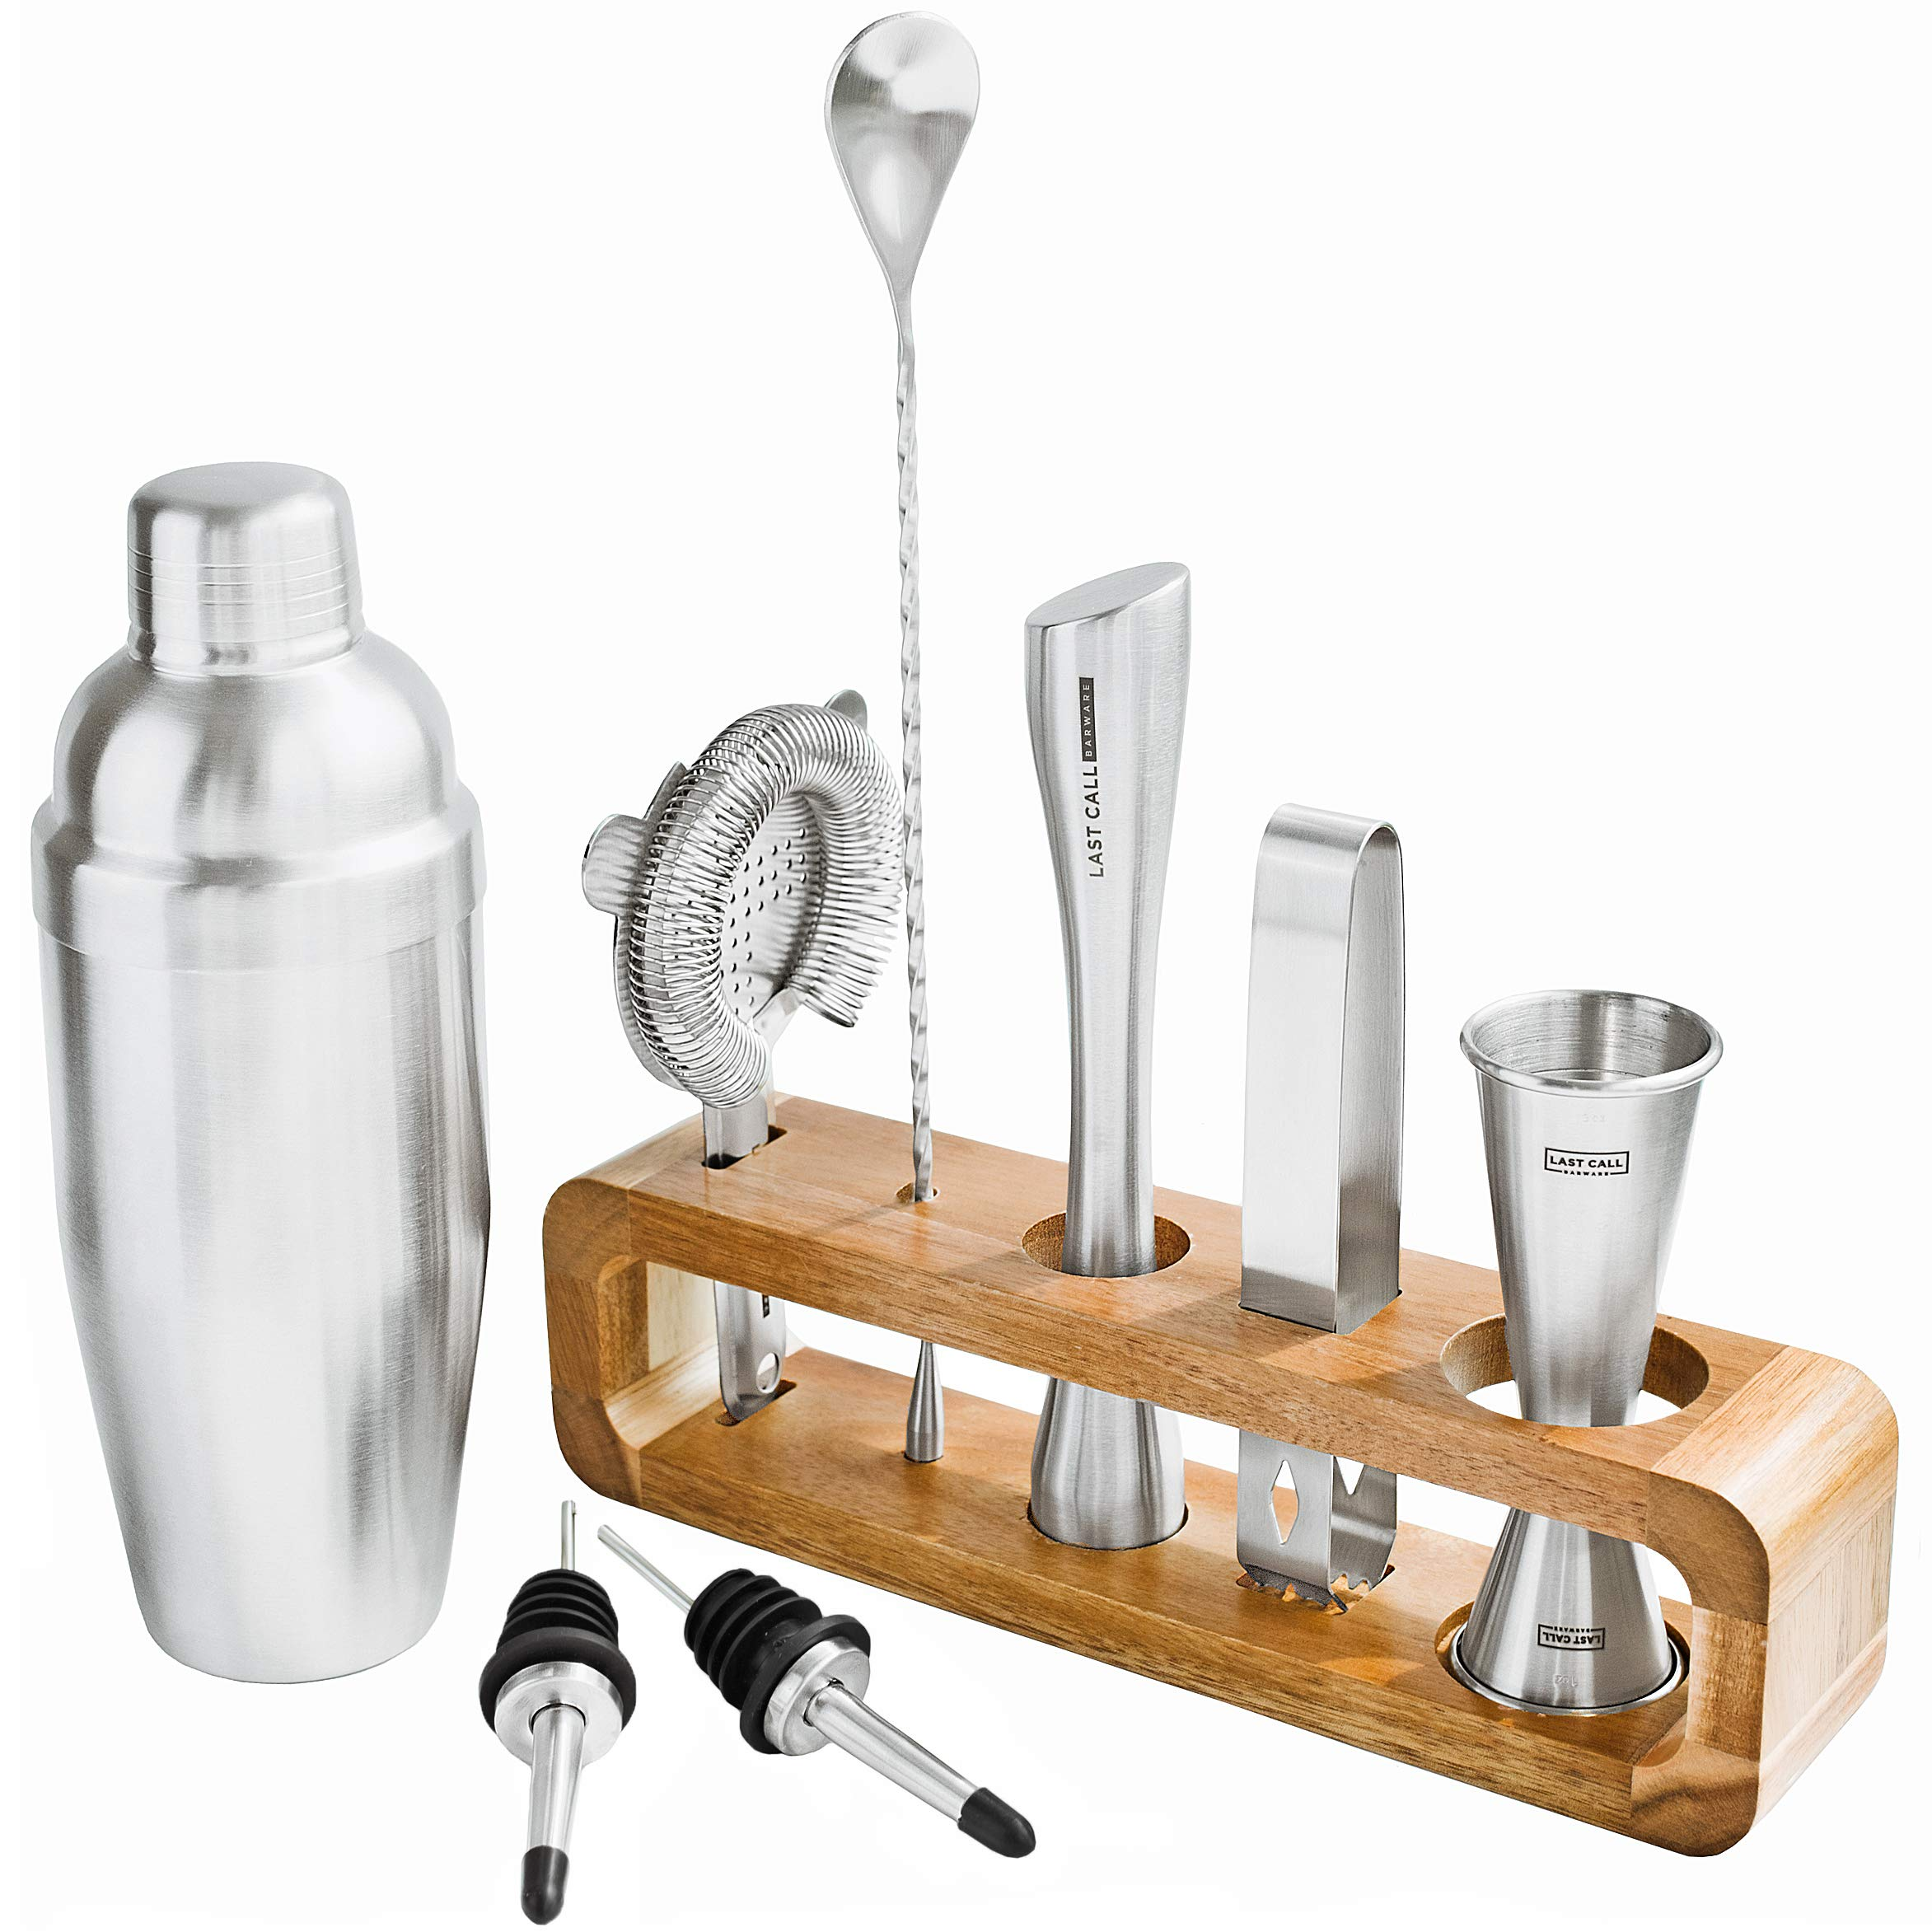 Modern 9 piece Bartender Kit with Natural Acacia Wood Stand - Top Grade Professional and Home Bar Cocktail Shaker set with Premium Bar Tools - Perfect for Mixing any drink! - Brushed Stainless Steel